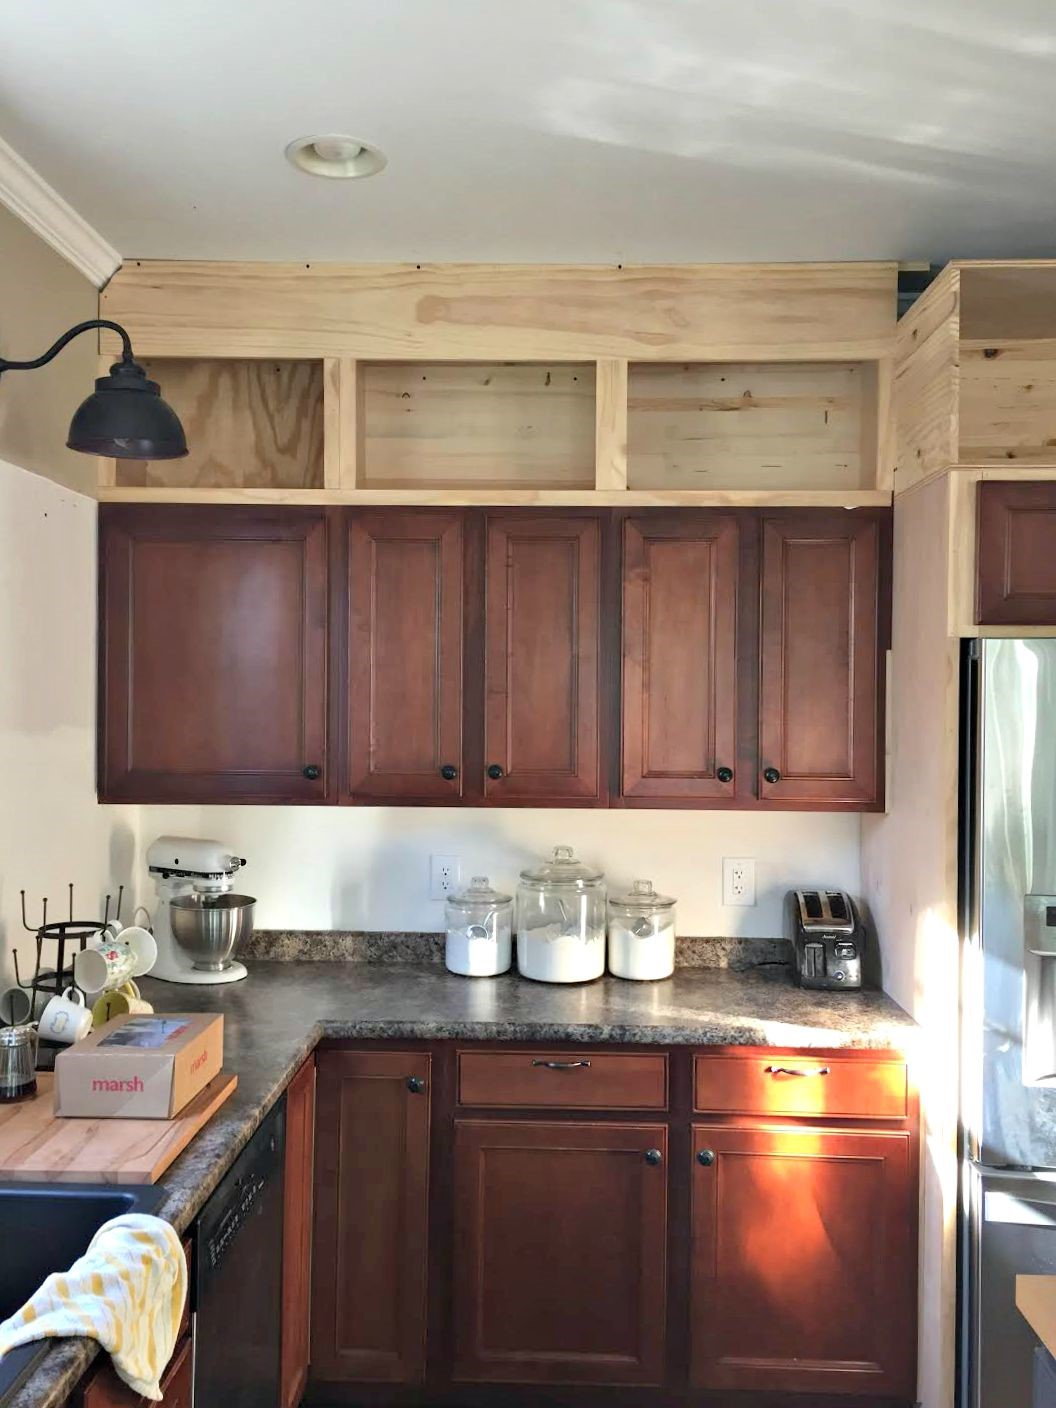 Upgrading Your Kitchen Cabinets Without Buying New Ones